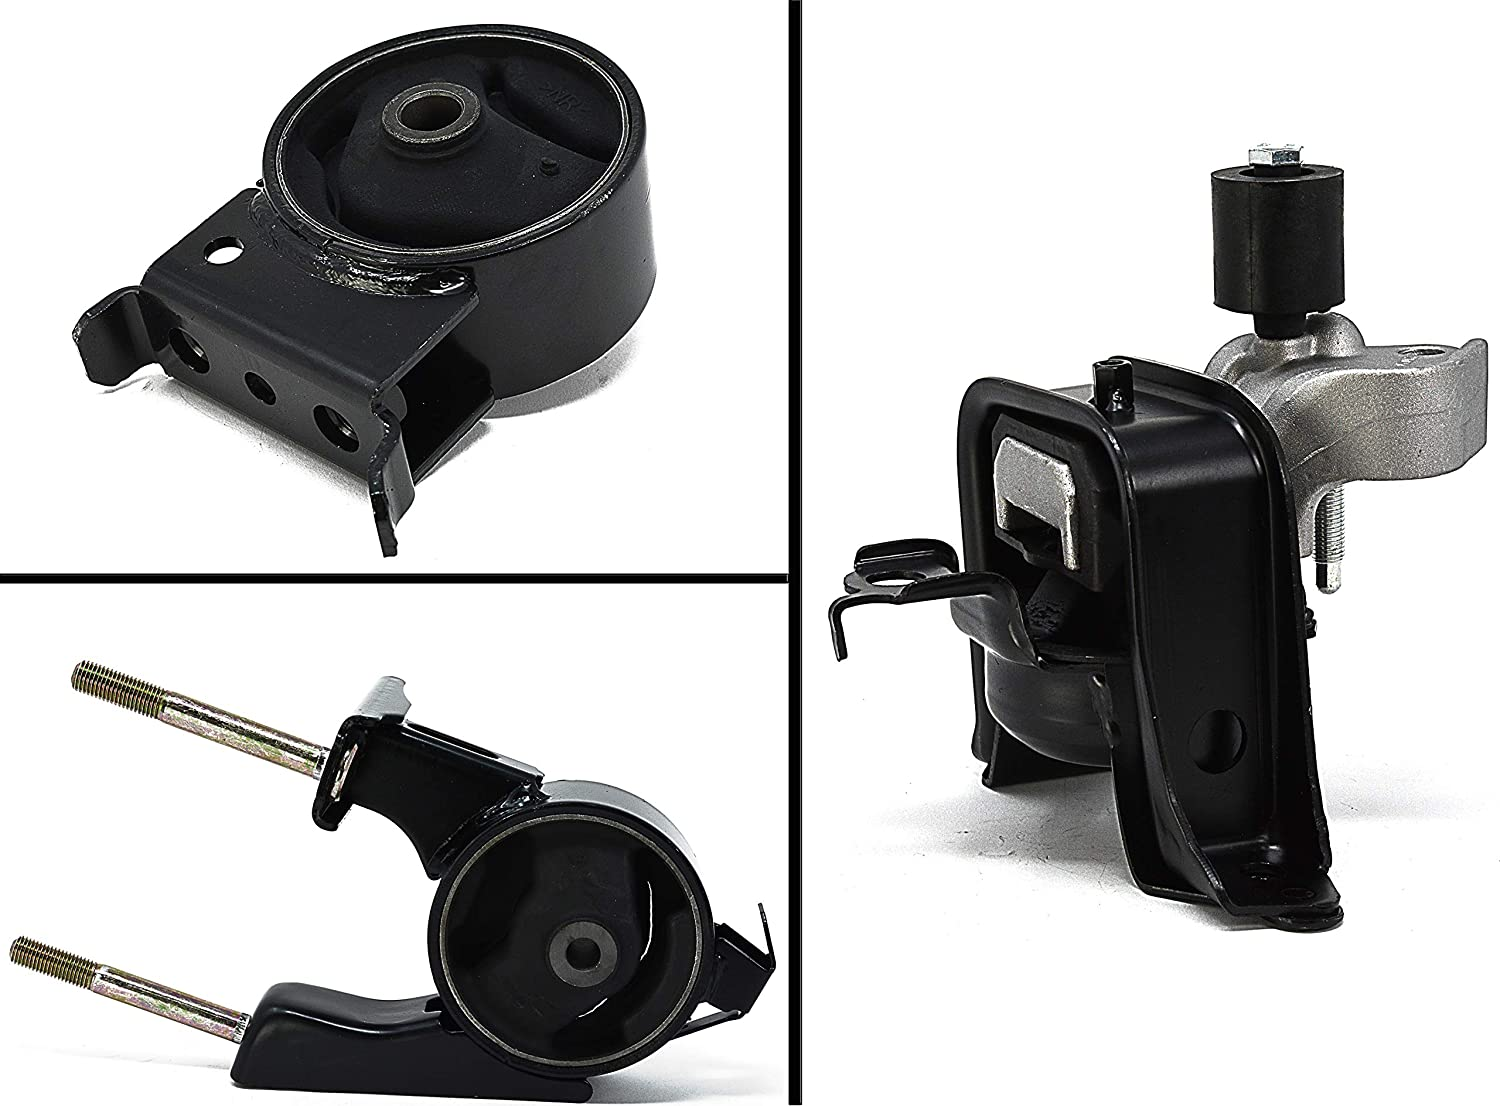 RP Remarkable Power Engine Motor Motor Mount Set Kit 3PCS Compatible With Echo 1.5L 2000-2005 /& Compatible With Scion xA xB 2004-2006